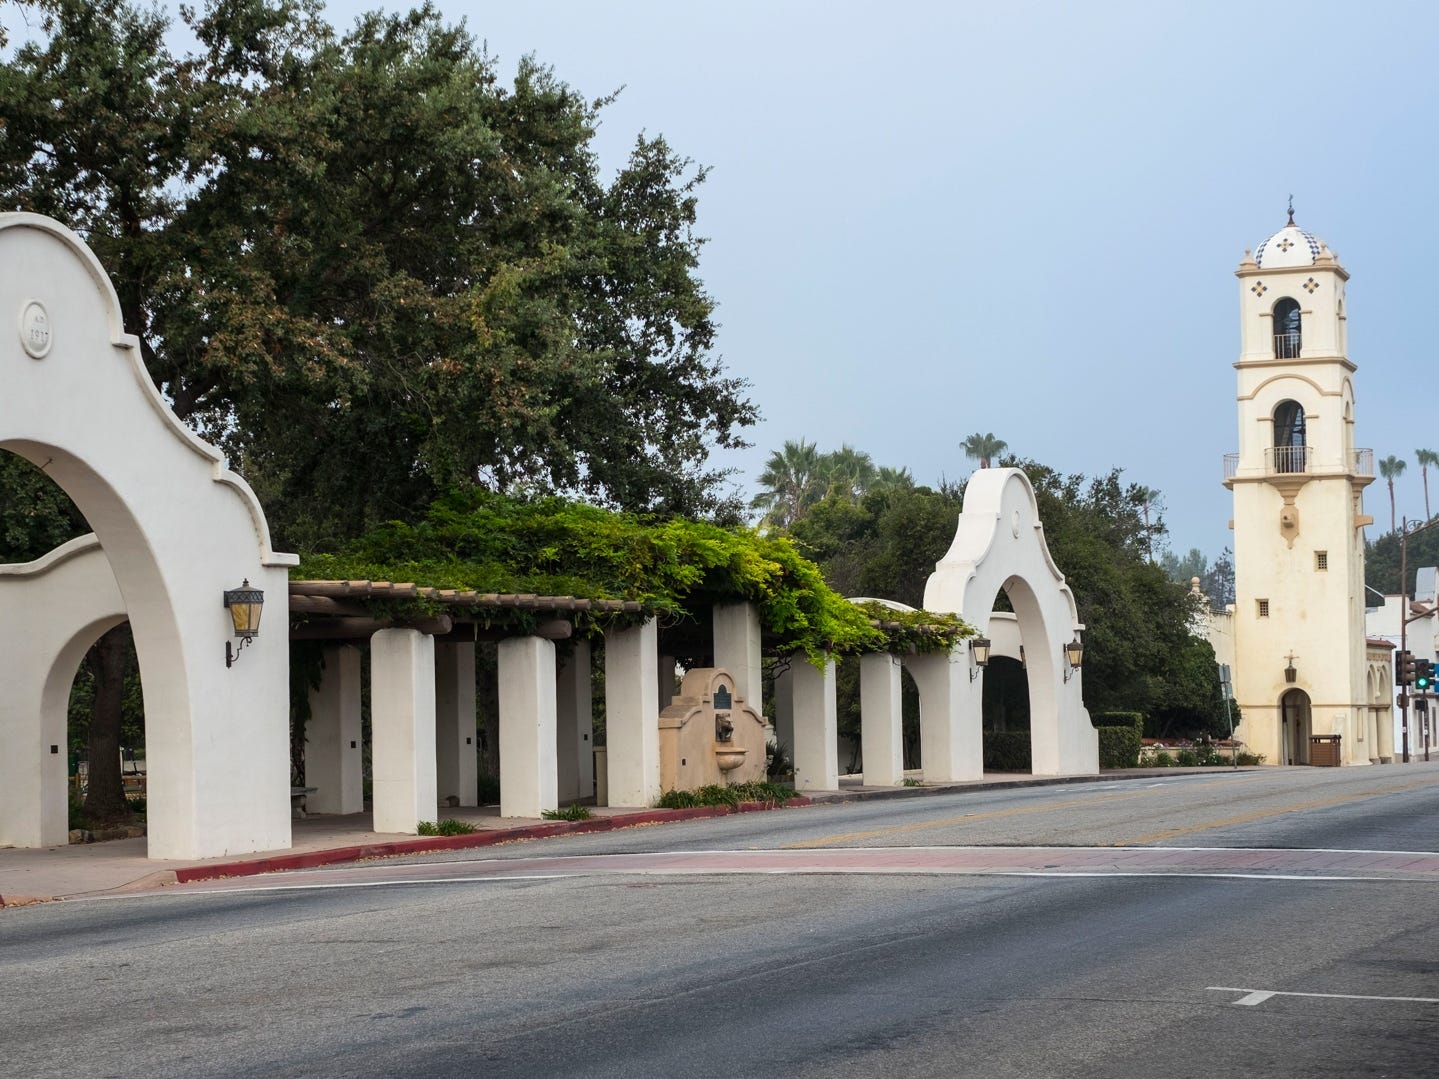 California: Ojai is located within driving distance of the chaos of Los Angeles, but they feel worlds apart. If you love hiking, biking and wine, this pastoral town is the perfect weekend getaway. Explore the trails at the nearby Los Padres National Forest, and then relax with a glass of wine at one of the numerous tasting rooms serving up locally made wines that are dotted along the town's main drag. Ojai also has a Mediterranean climate, so you can also enjoy some olive oil tasting — which is one of the free things to do in California. Ojai Olive Oil Company Tours and Tastings: Free.